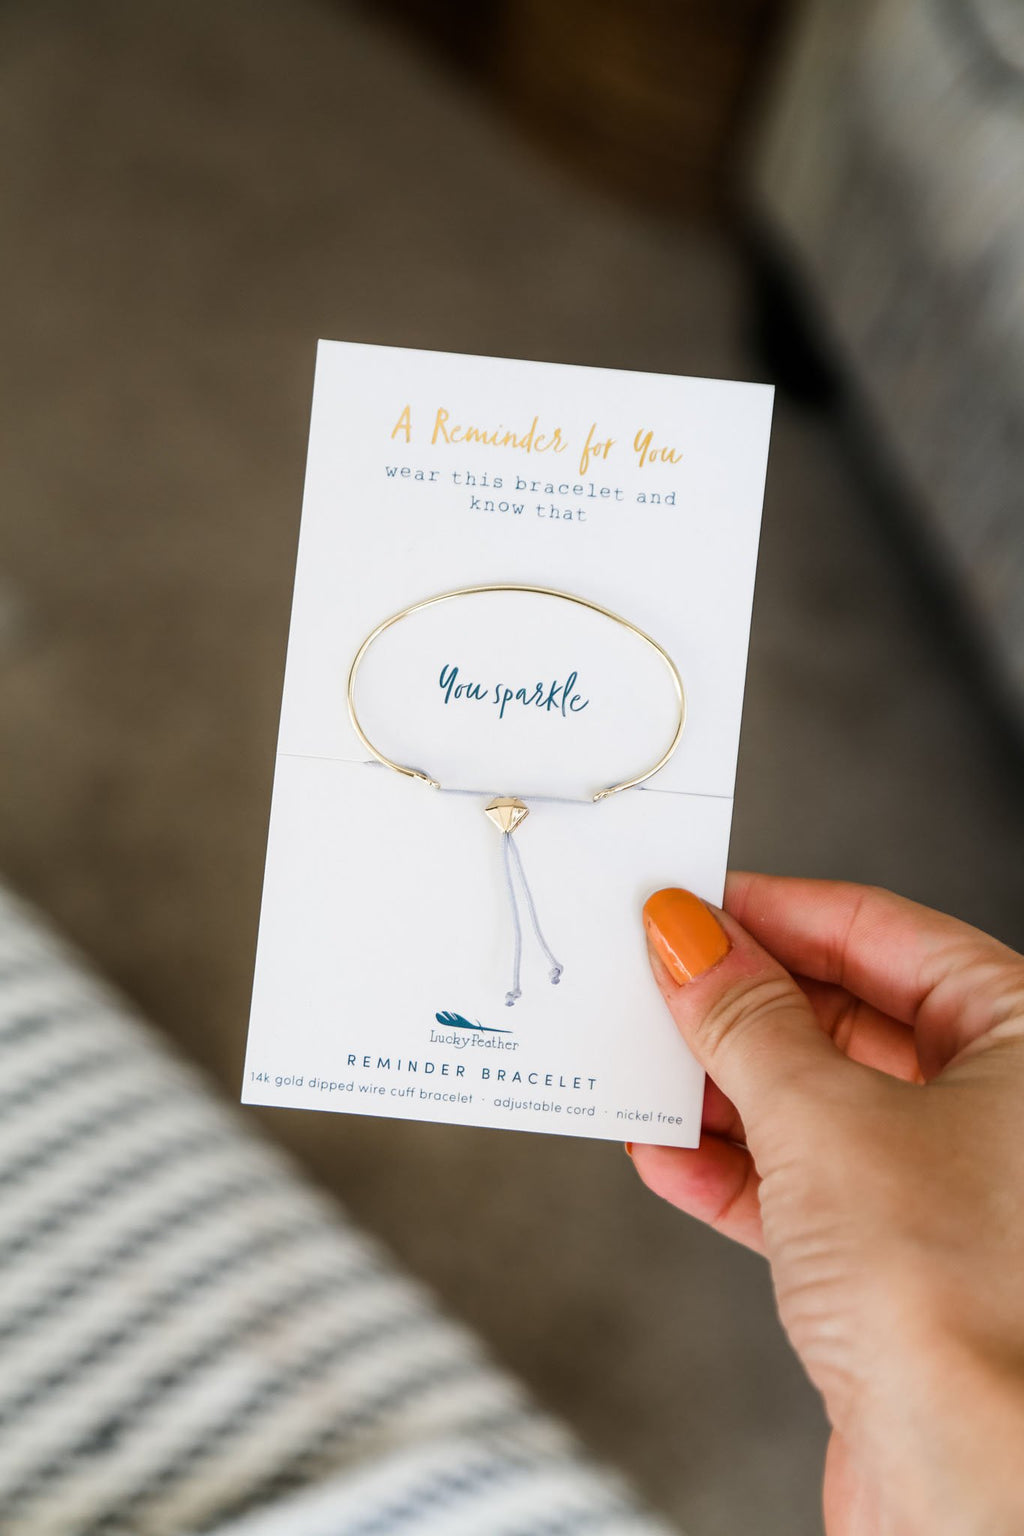 You Sparkle - Reminder Bracelet